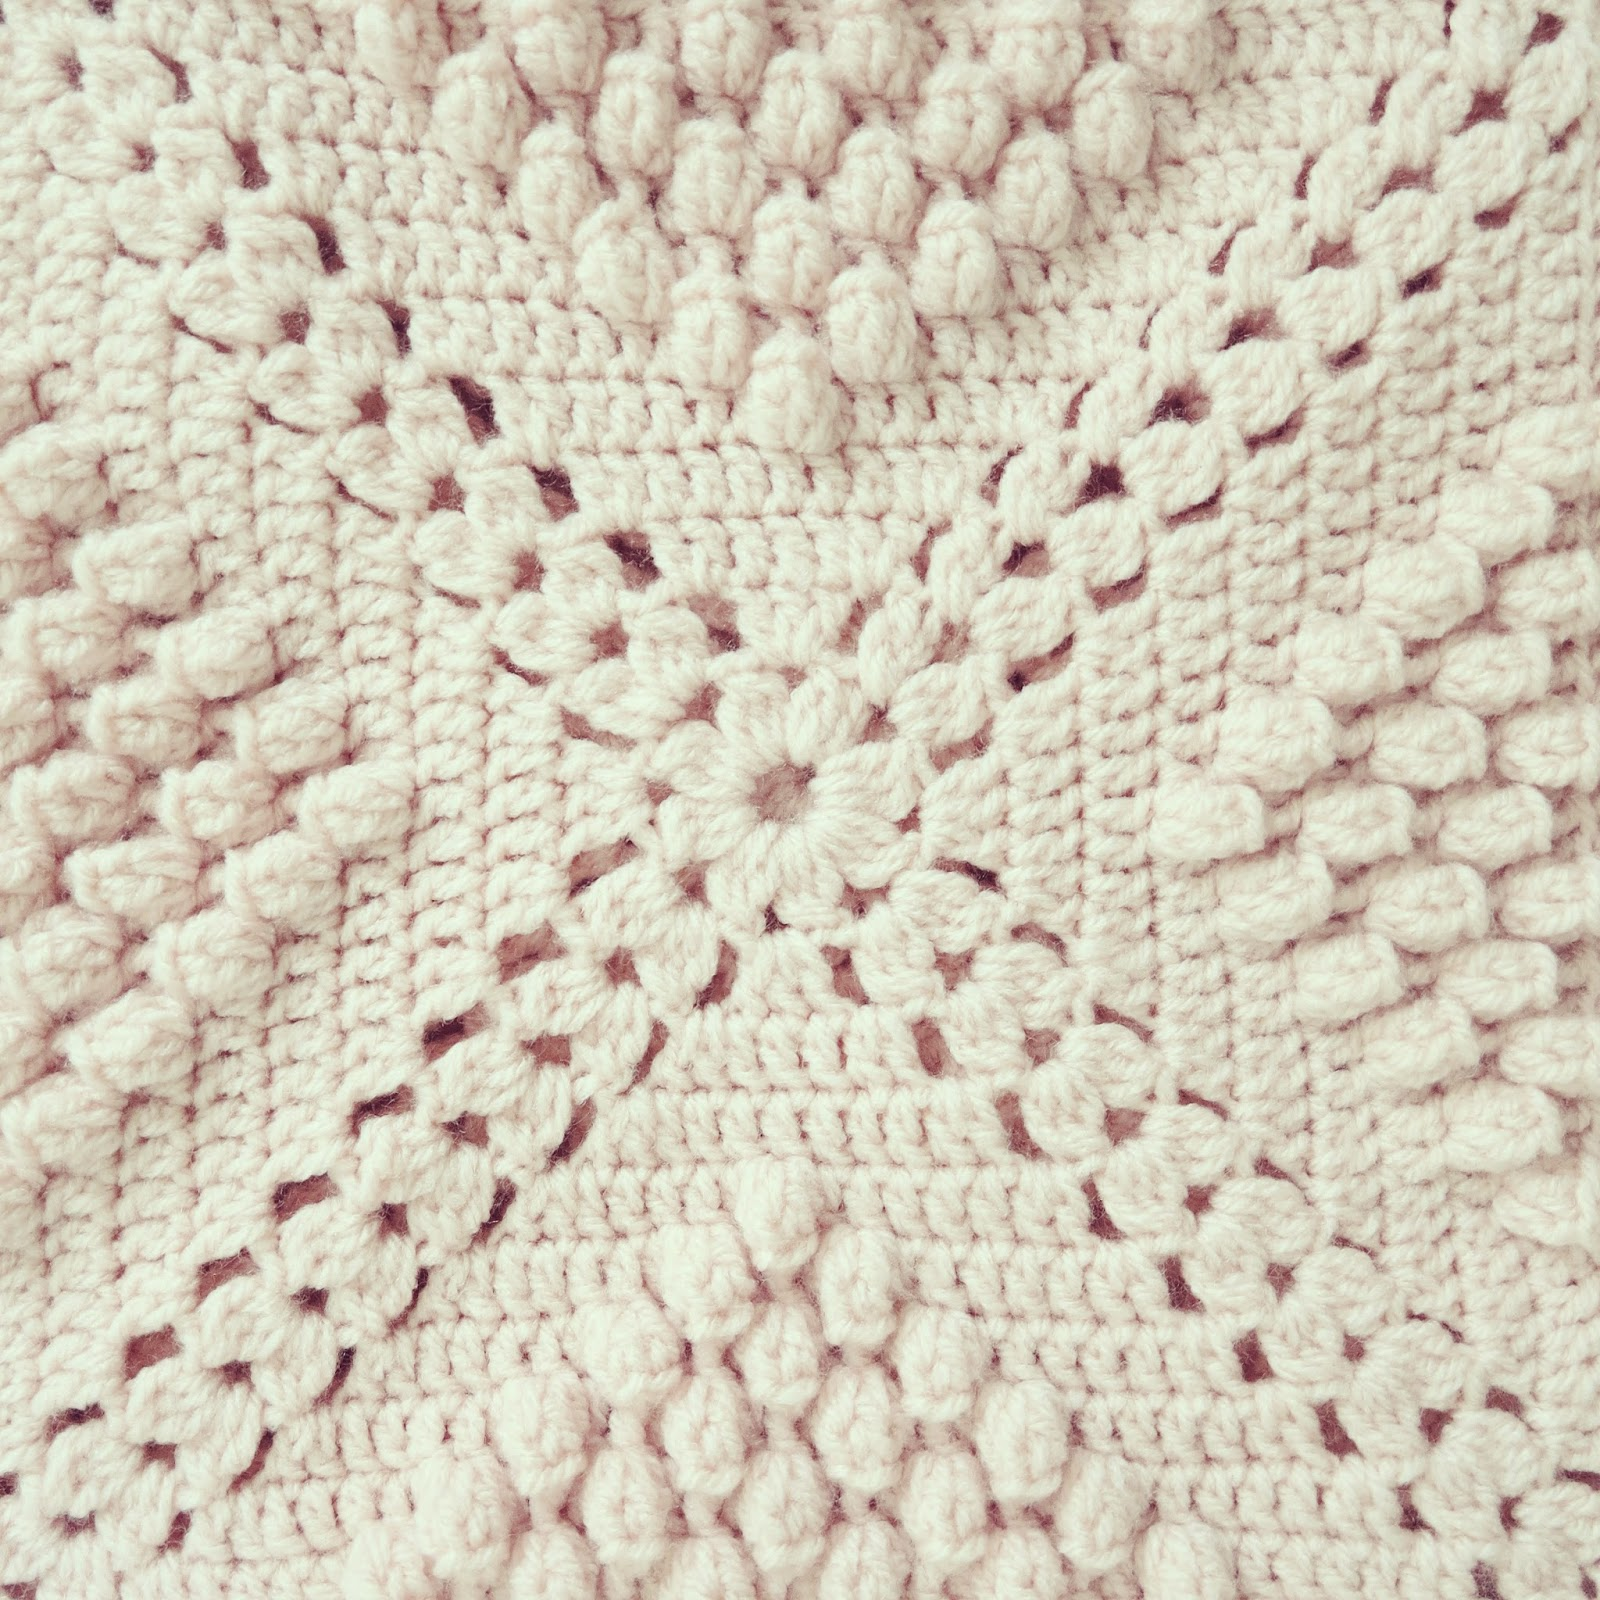 Crochet Stitches With Pattern : ... crochet, popcorn, bobble stitch throw, blanket, powder pink, pattern